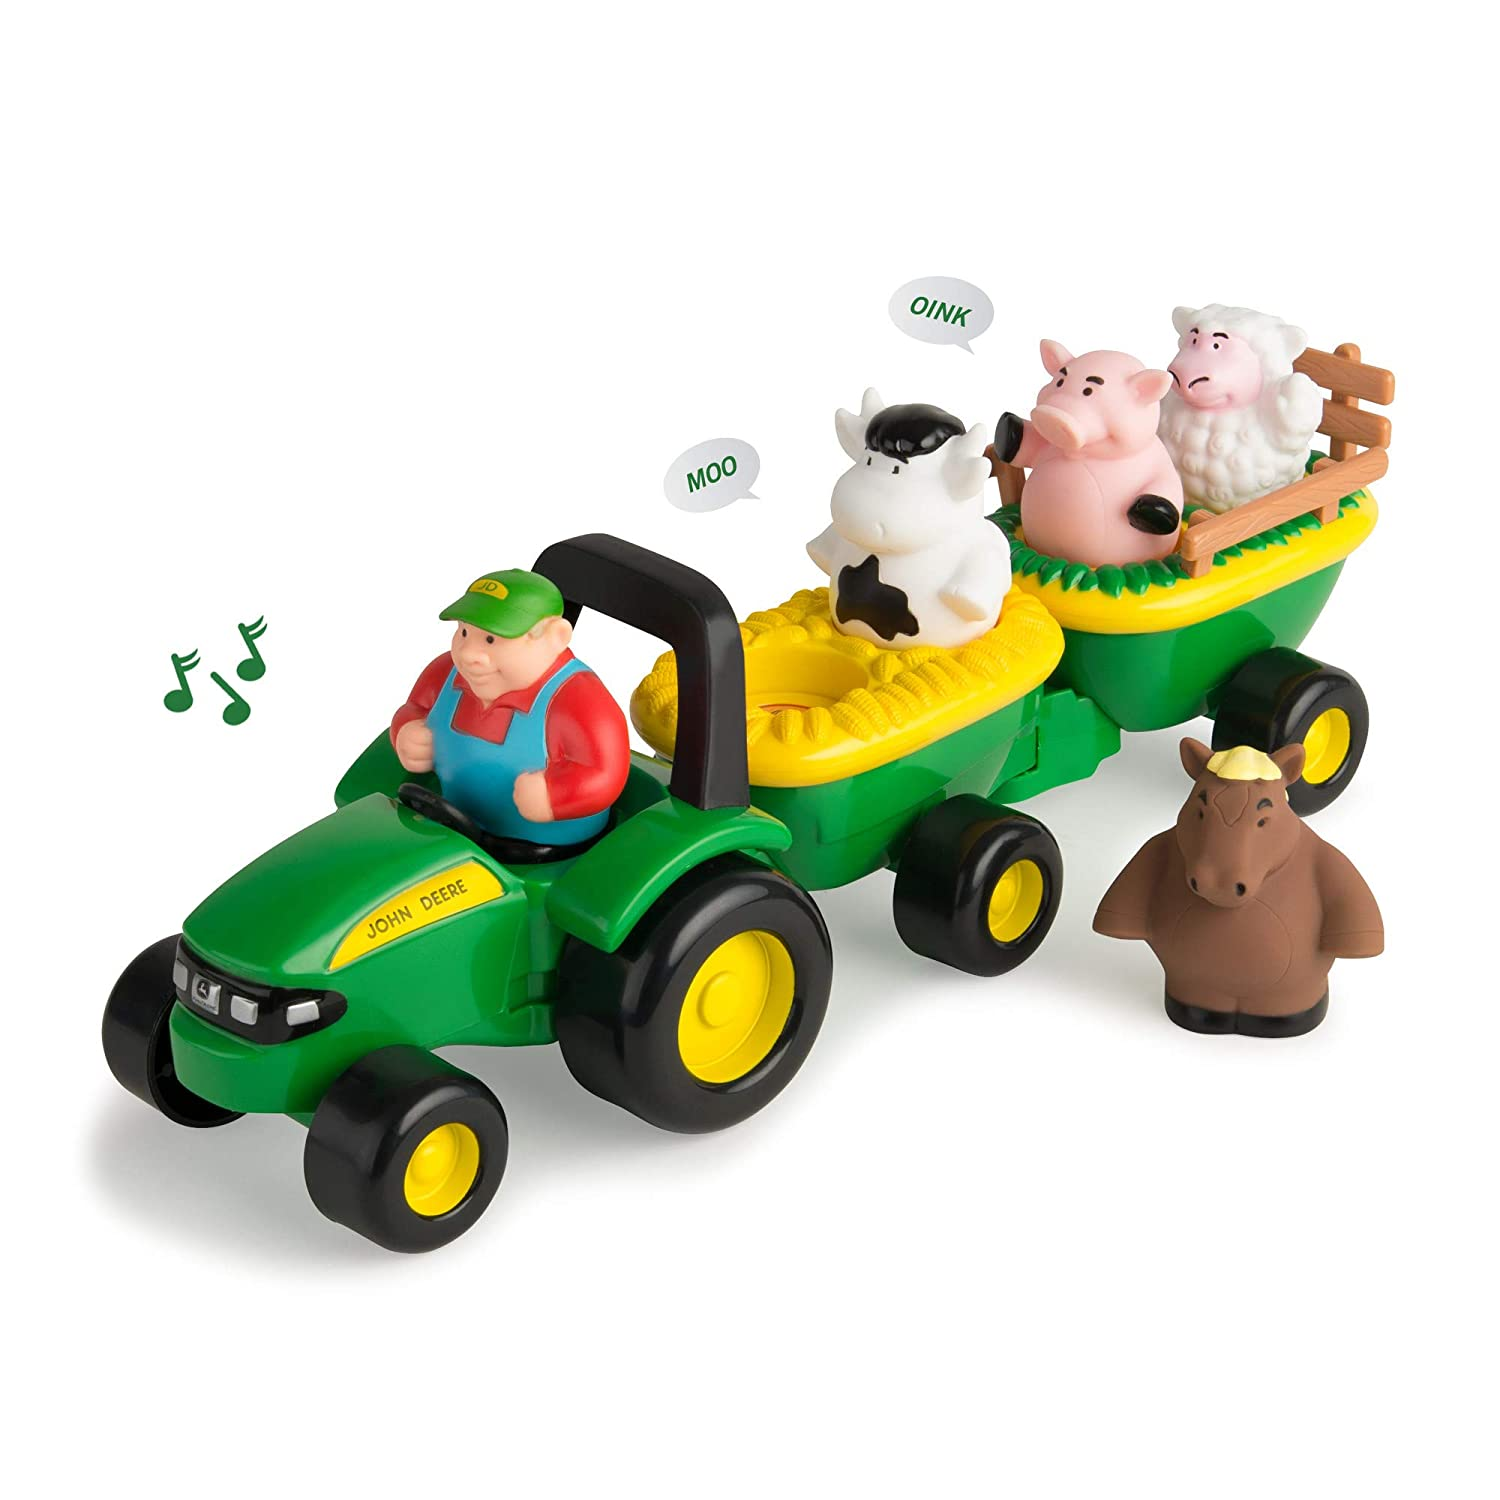 Top 9 Best Farm Animal Toys for Toddlers Reviews in 2019 7